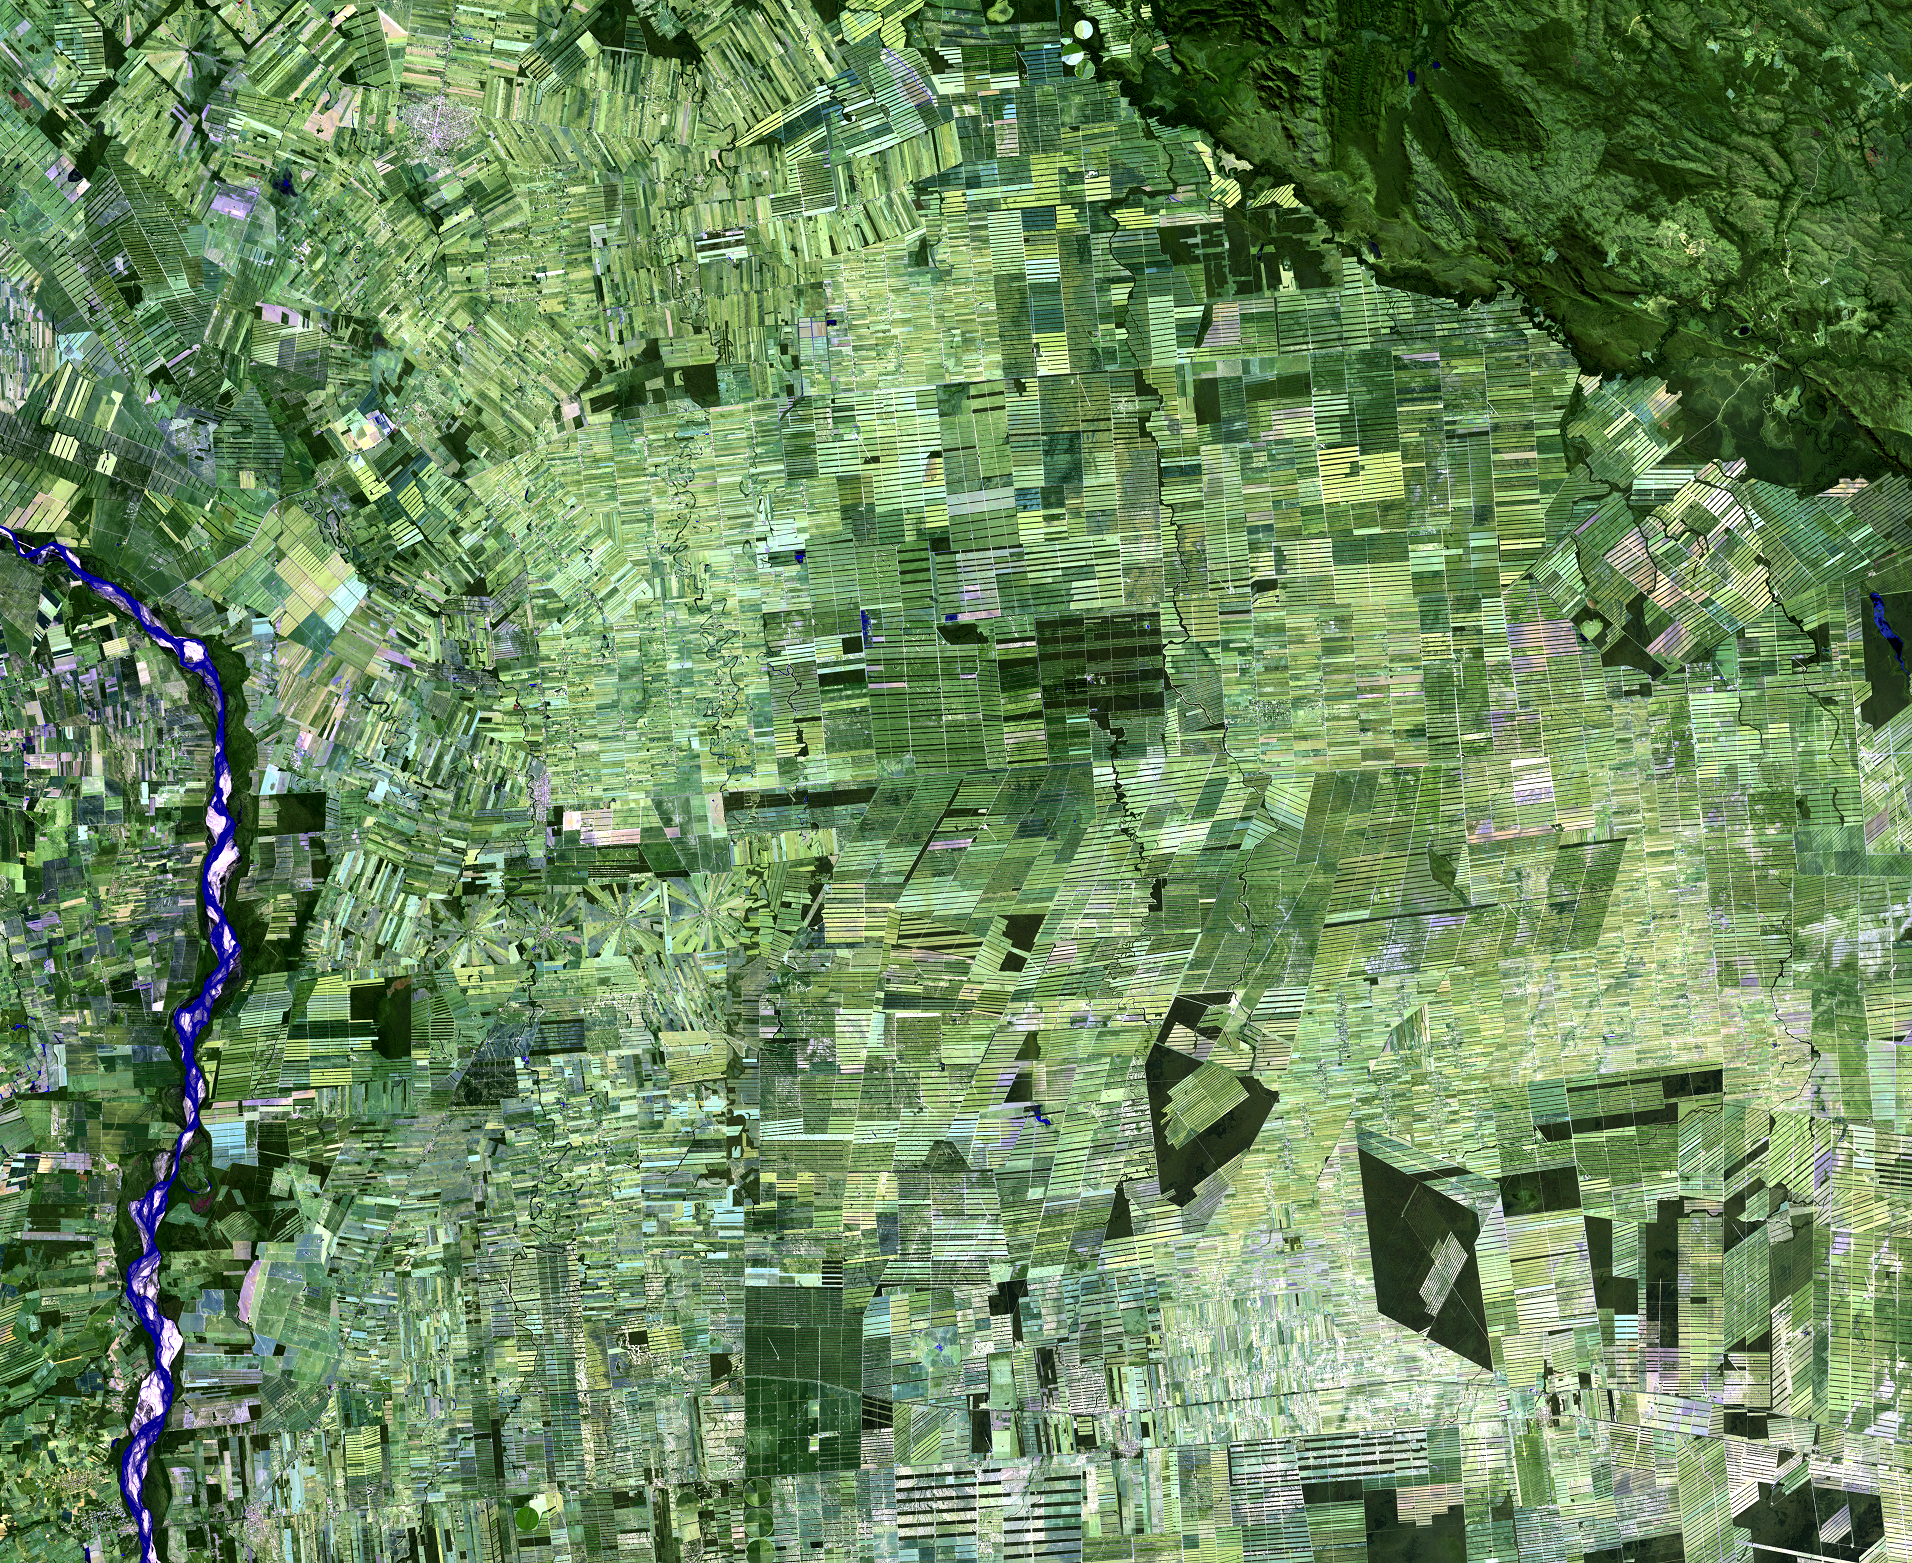 July 29, 2019, Landsat 8 (path/row 230/72) — Deforestation, Santa Cruz, Bolivia